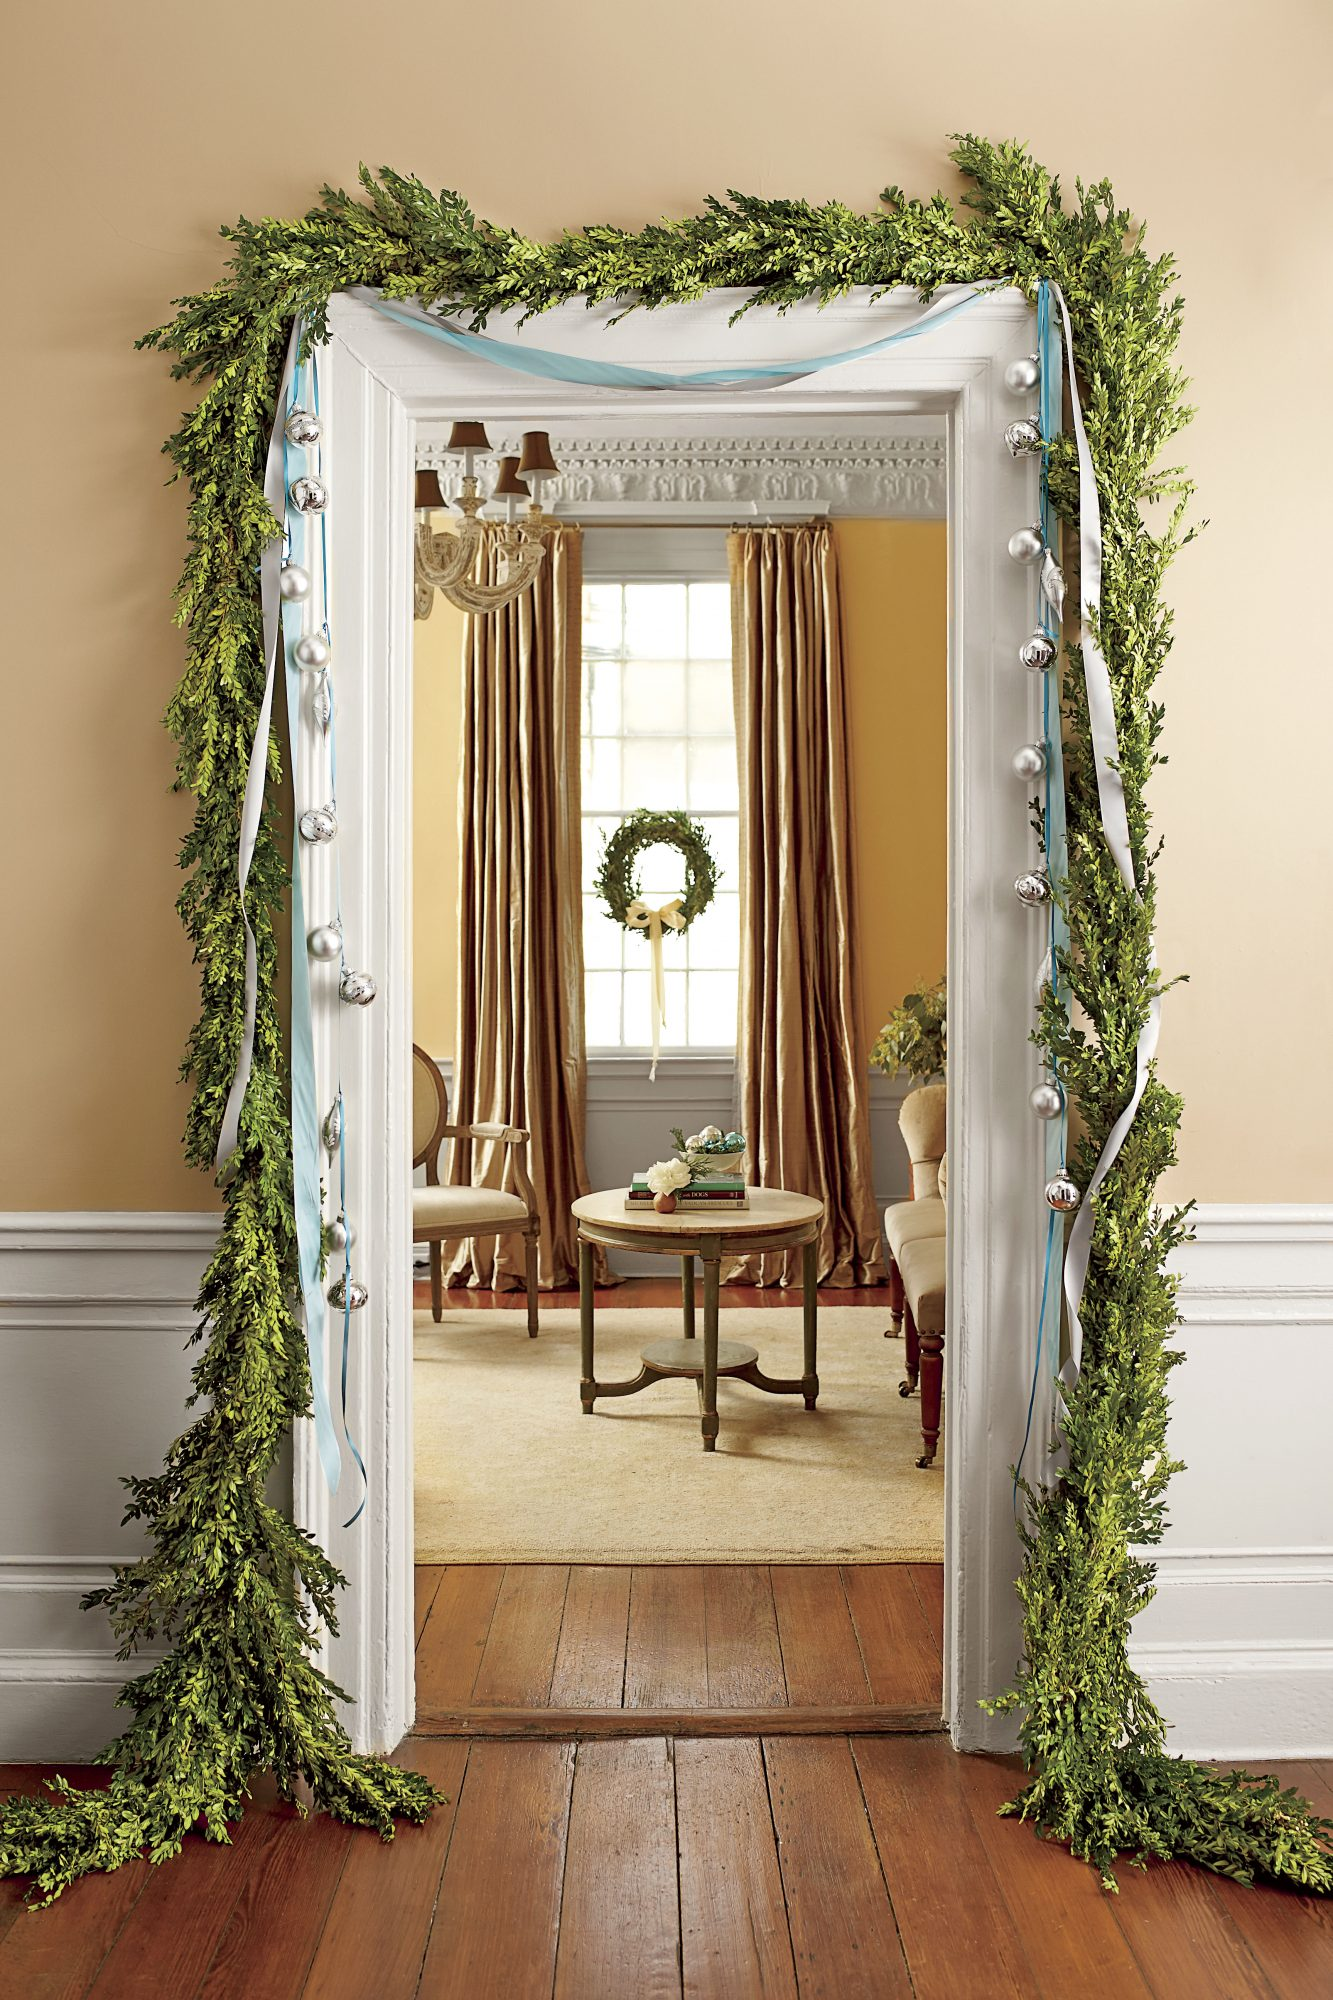 Boxwood Garland with Ribbon and Ornaments Around Door frame